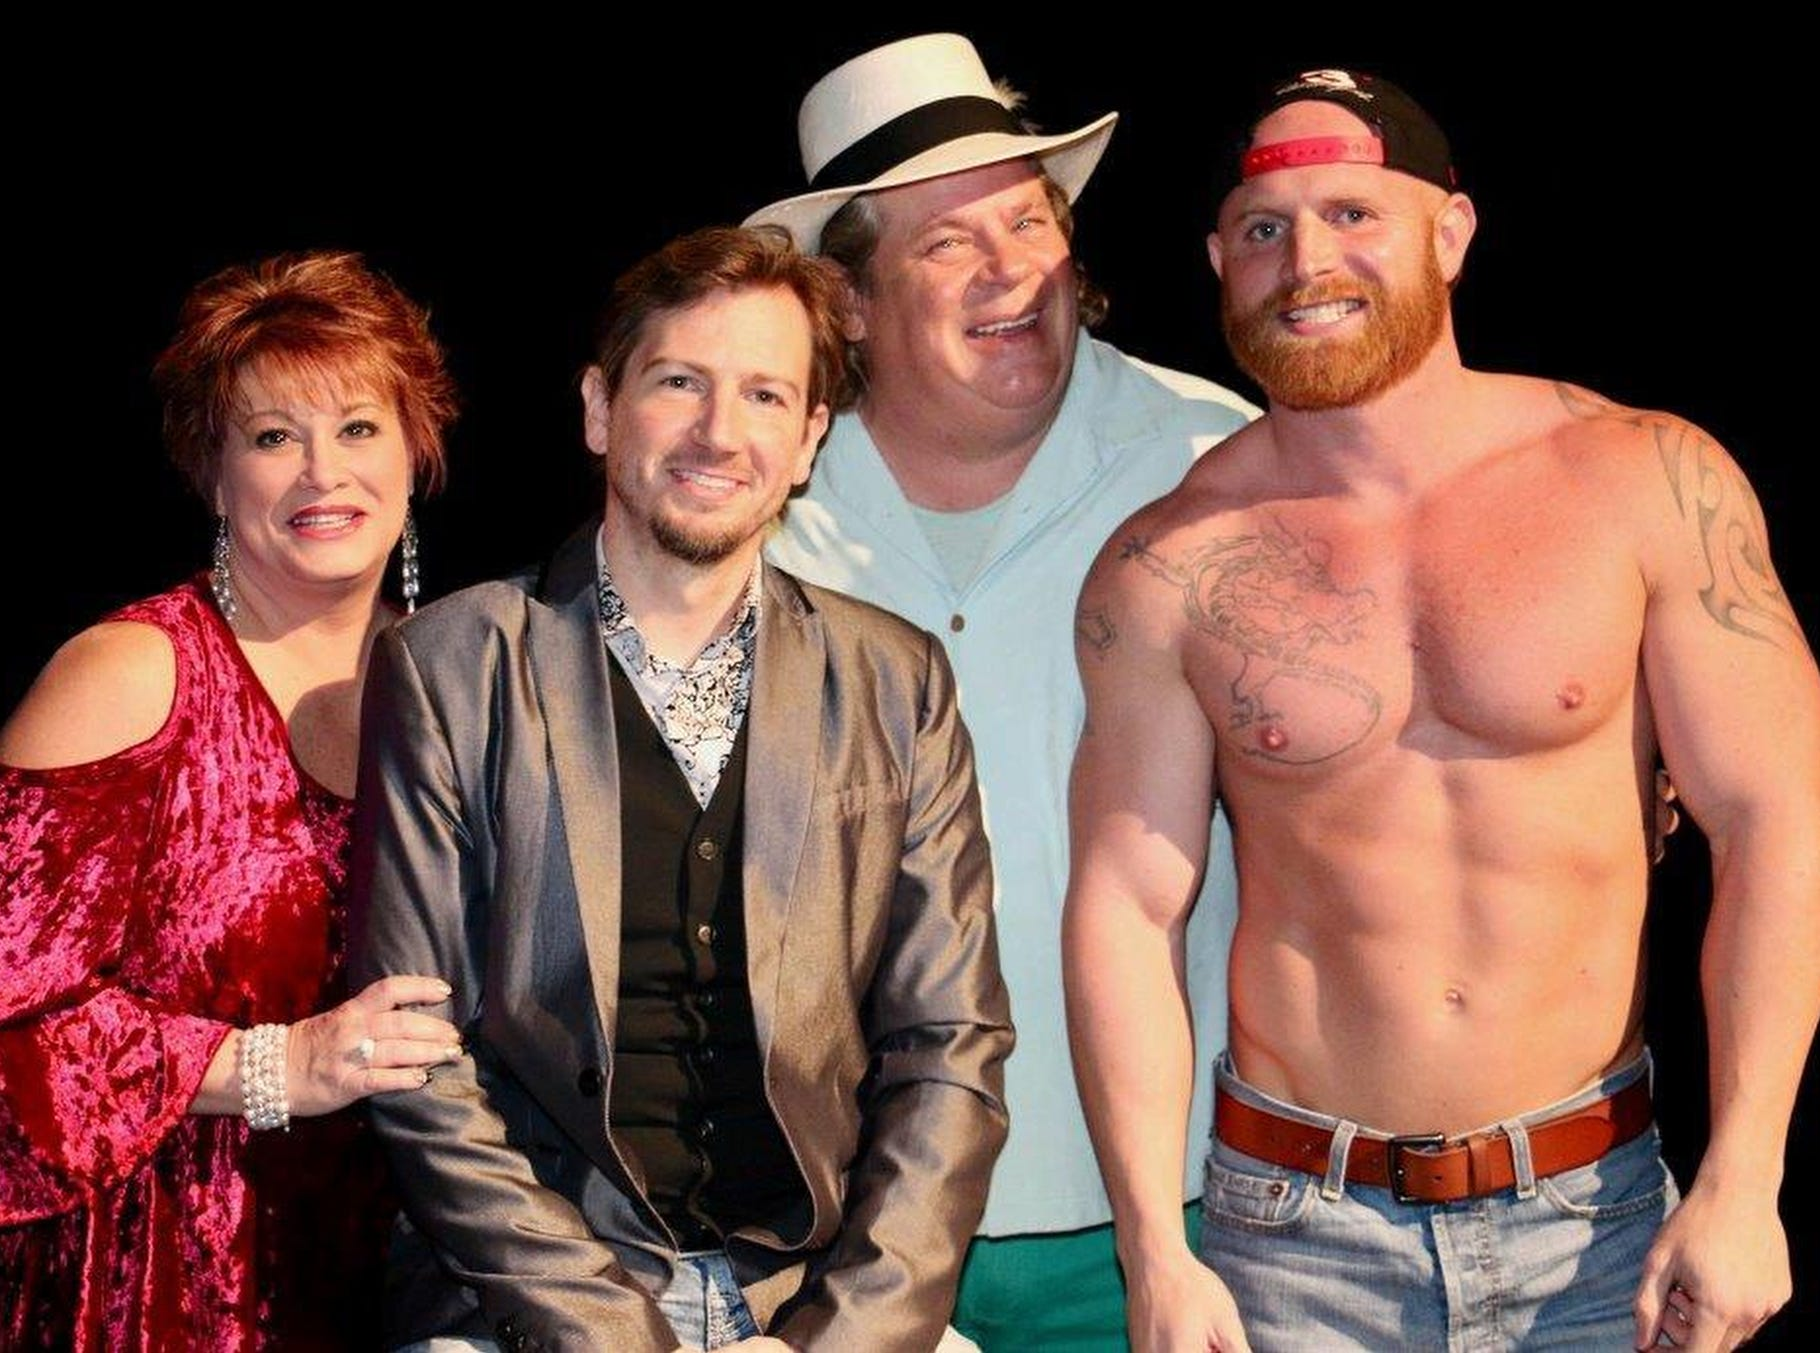 April 12  DARREN KNIGHT AND CLEDUS T. JUDD - SOUTHERN MOMMA COMEDY EXPERIENCE: 8 p.m. War Memorial Auditorium, $30-$50, tpac.org